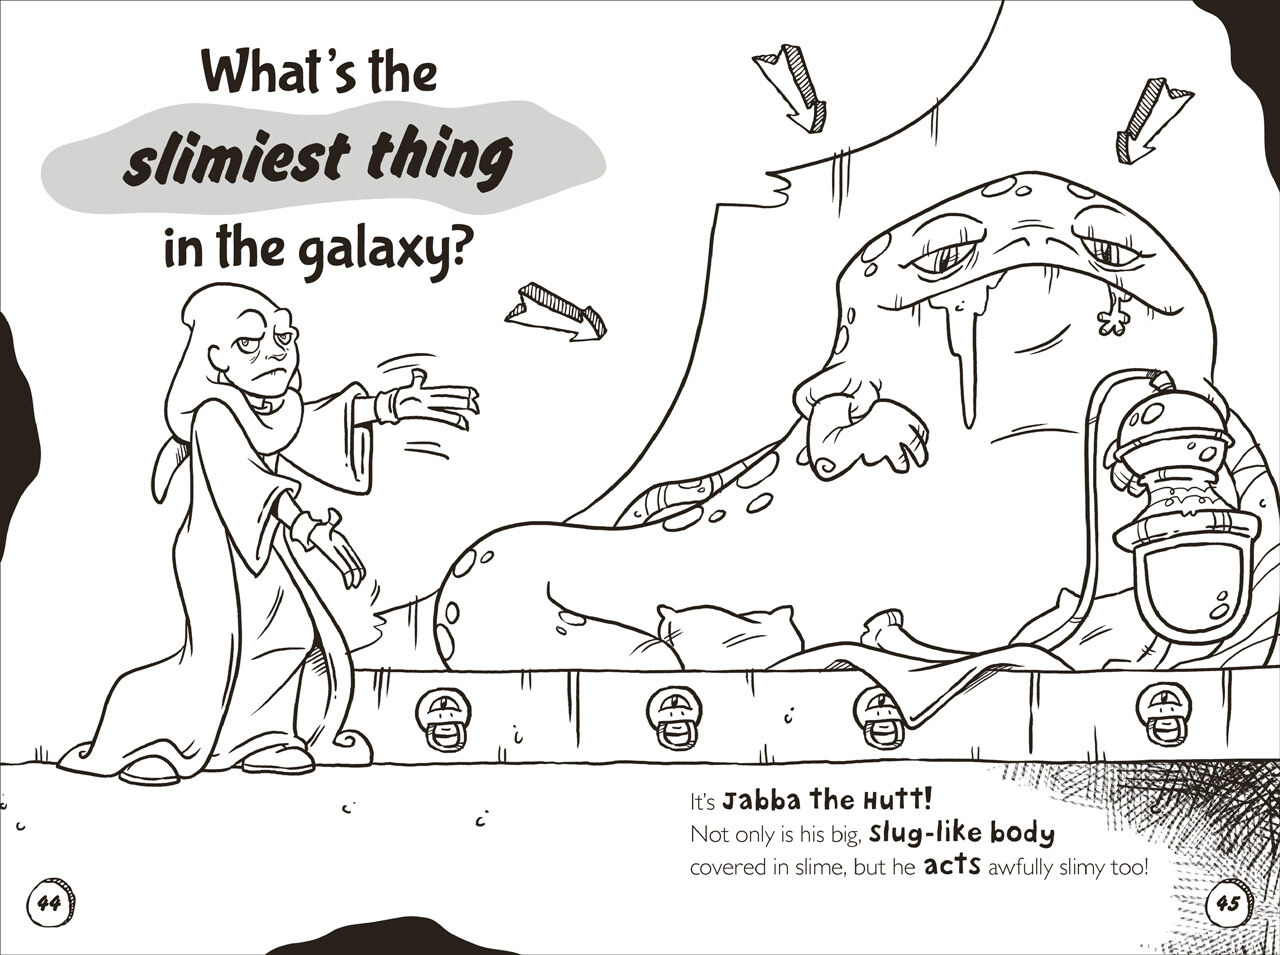 That Star Wars Book of Monsters, Ooze, and Slime spread on Jabba the Hutt